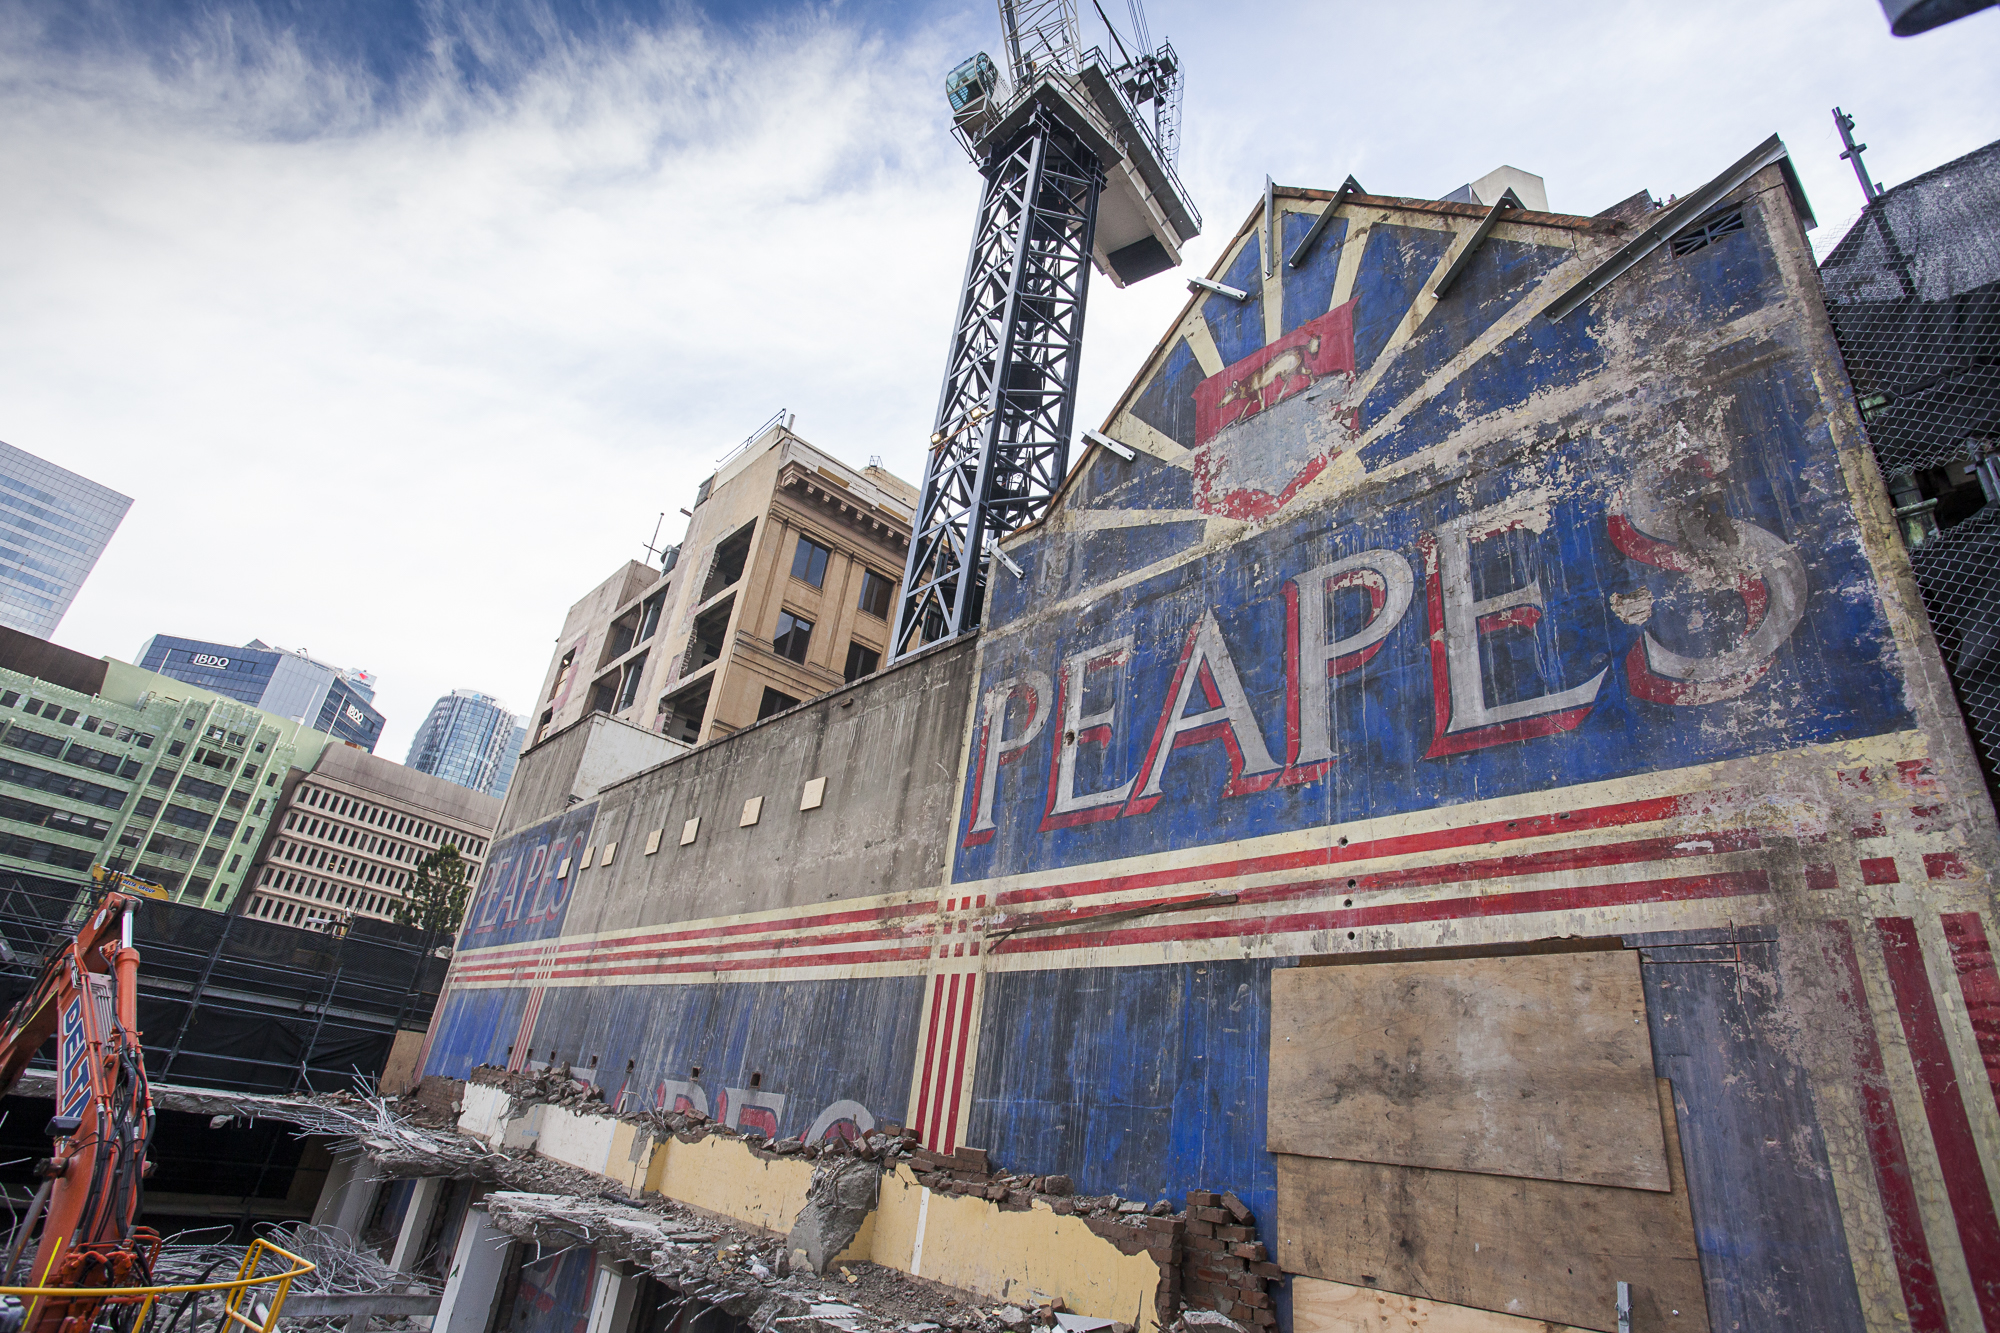 1 Both 'Peaps' Facade exposed on 285 George St